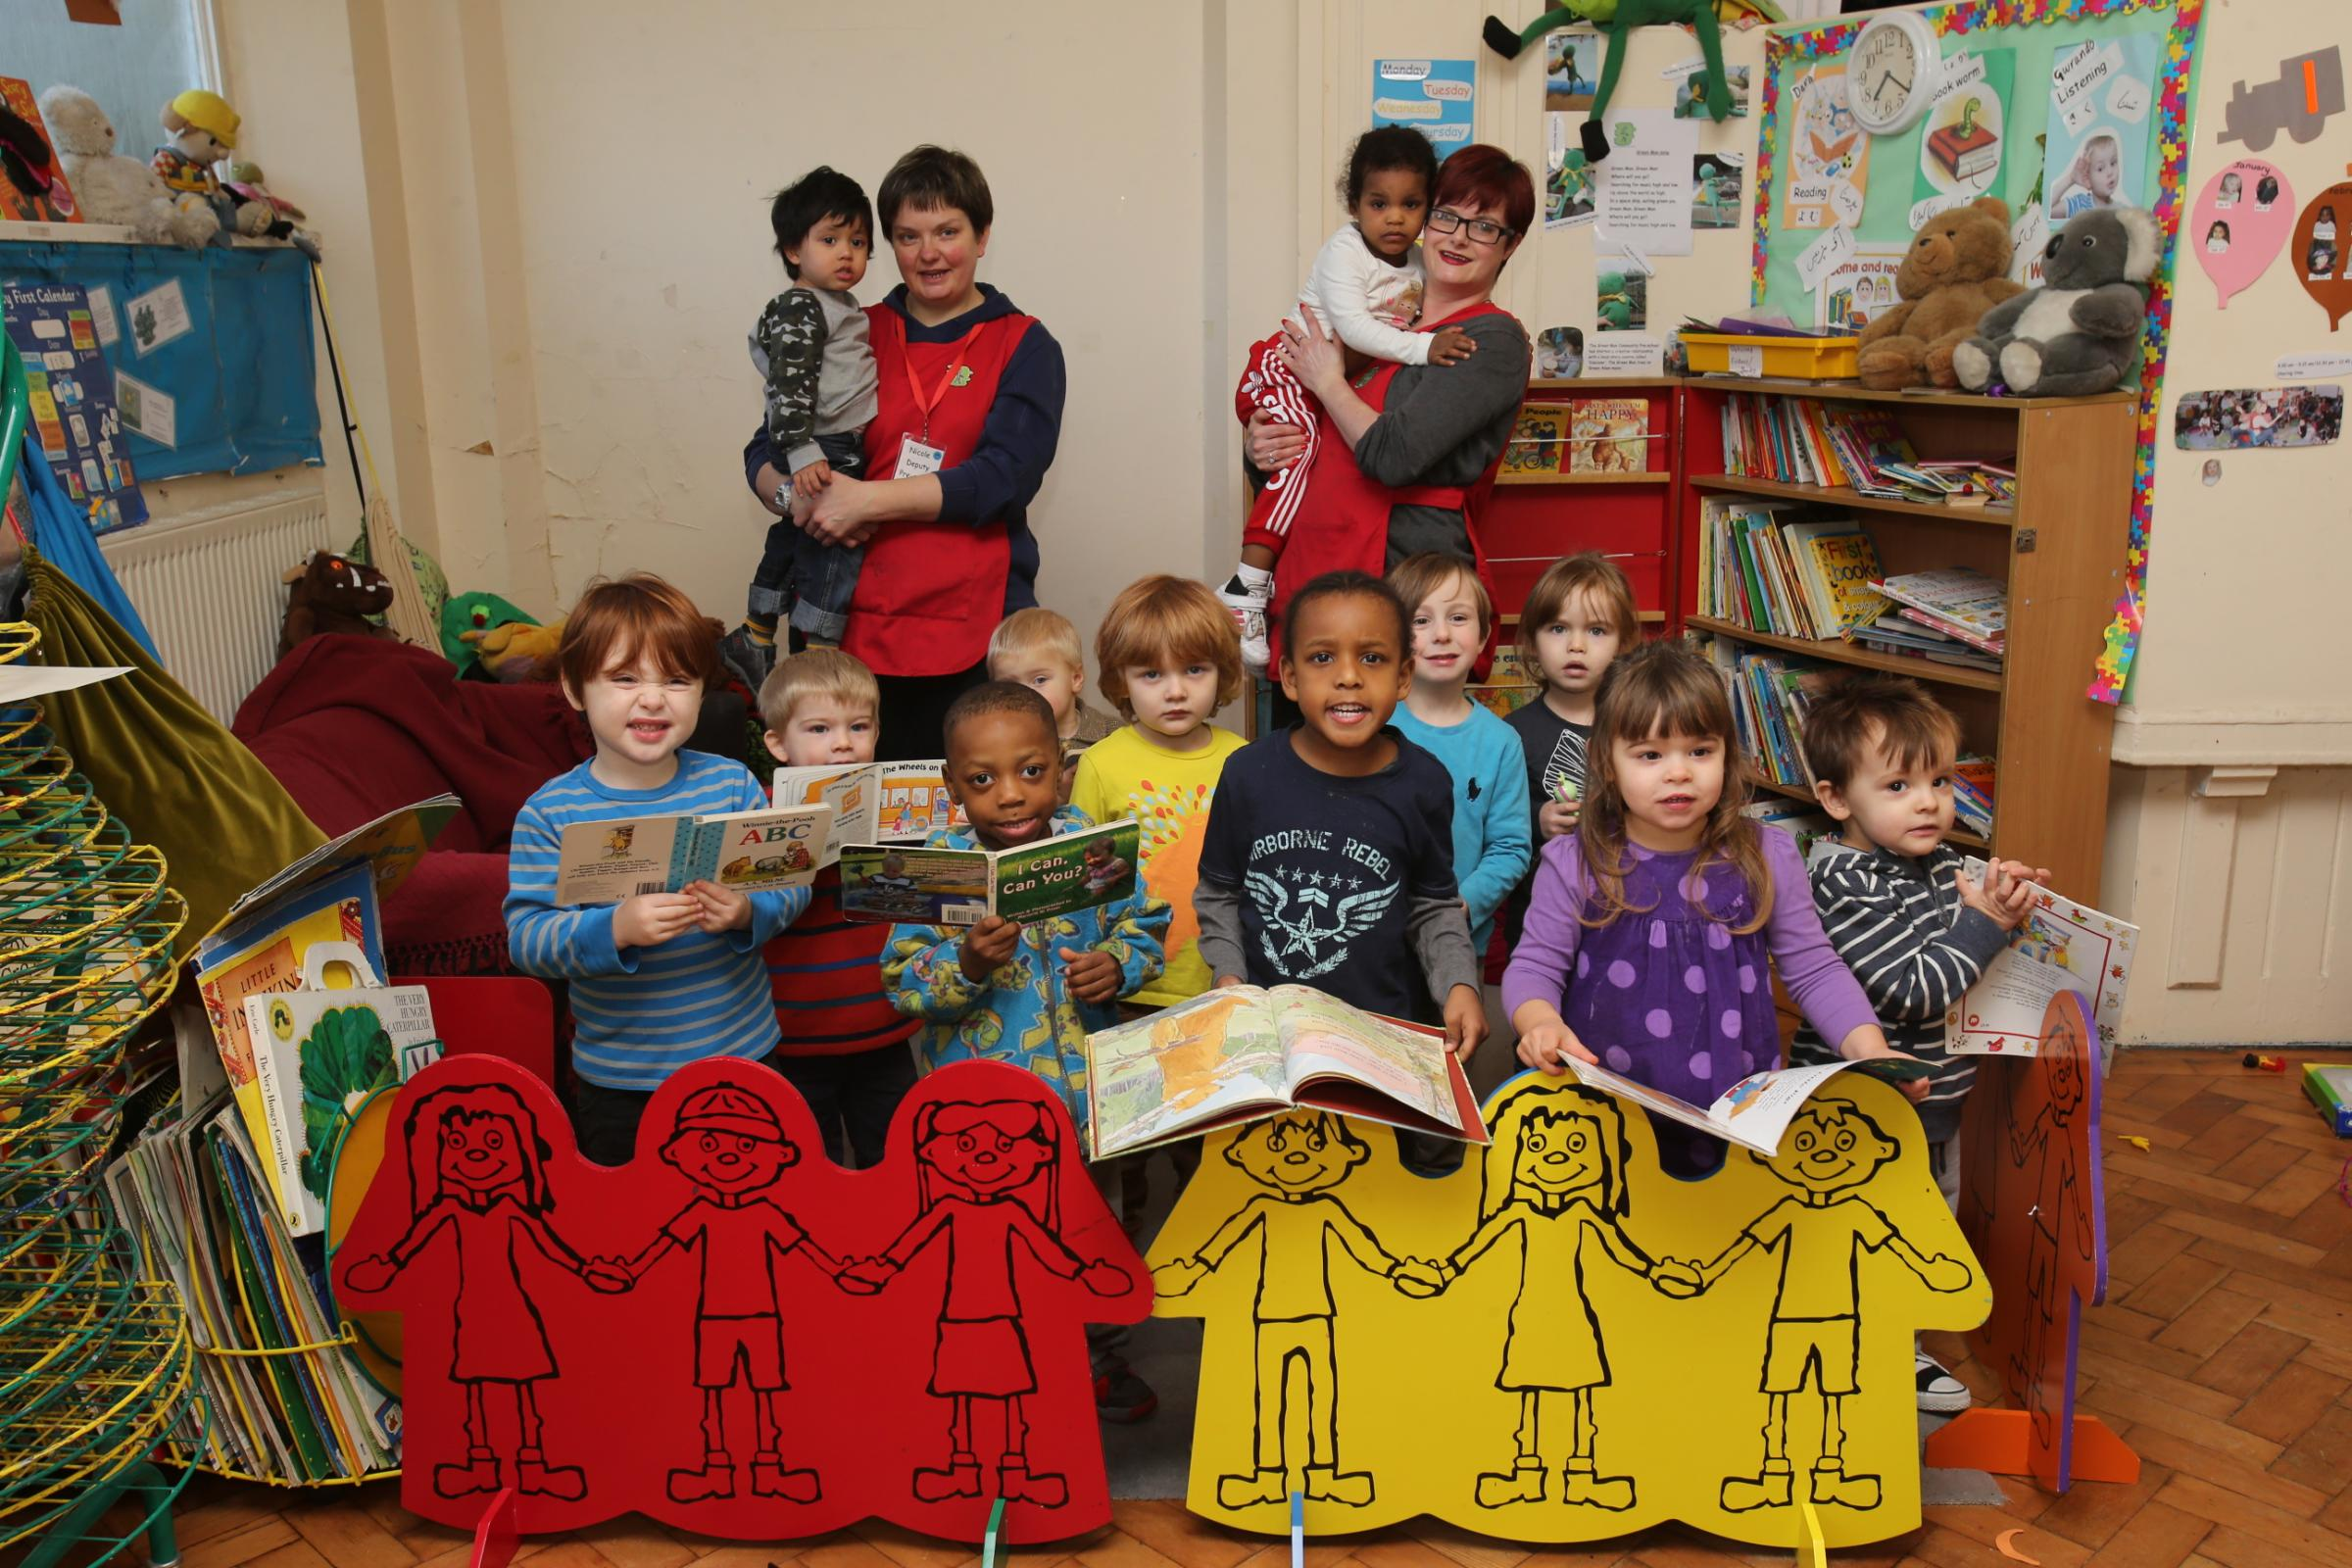 Children celebrating at the pre-school this week.